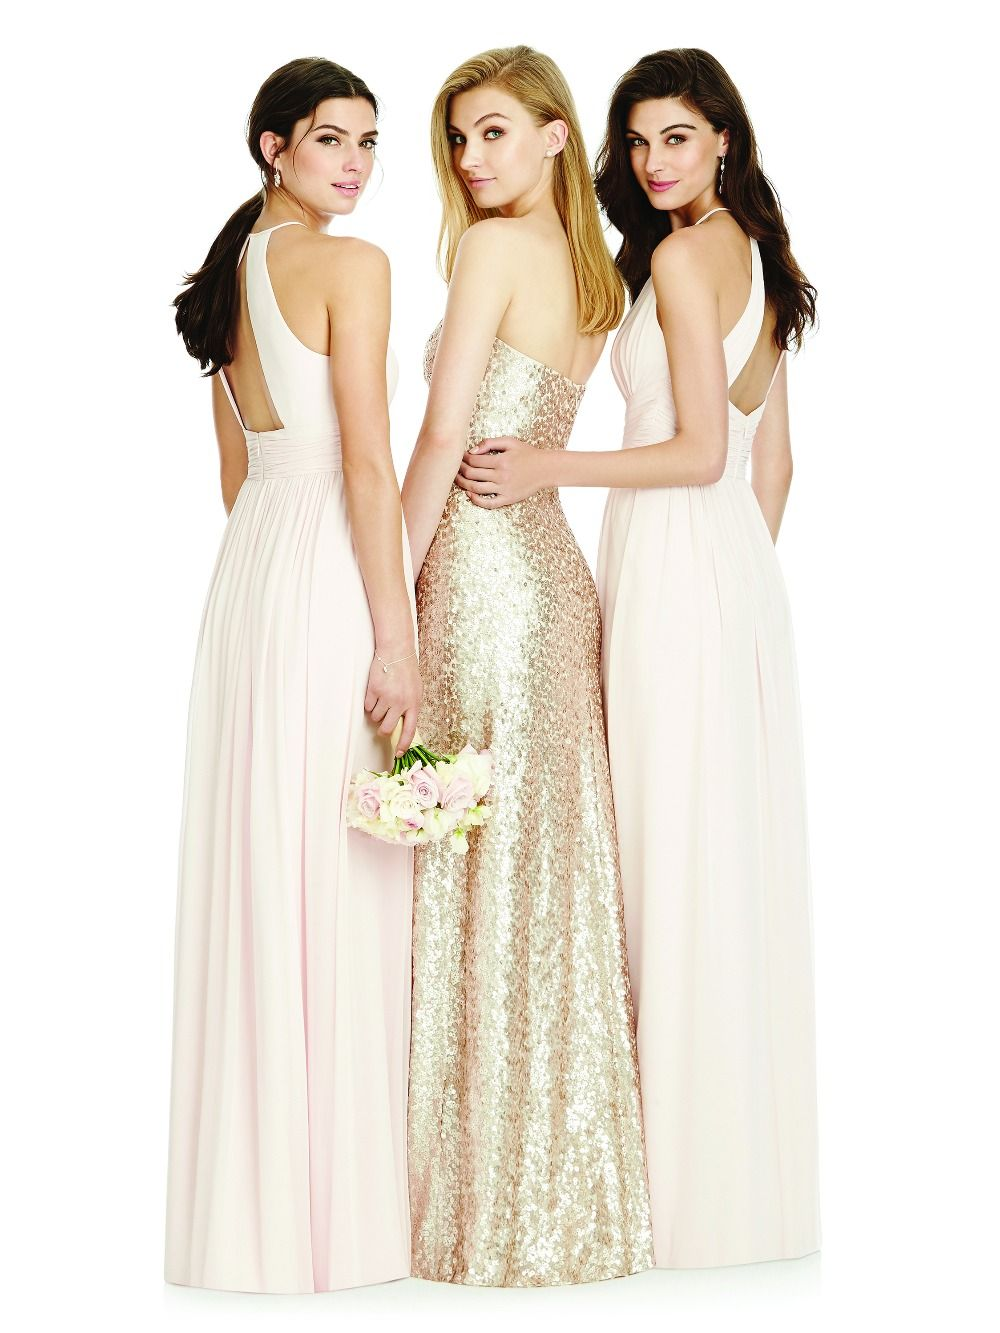 Sequin Bridesmaid Dresses By Dessy | Sequin bridesmaid